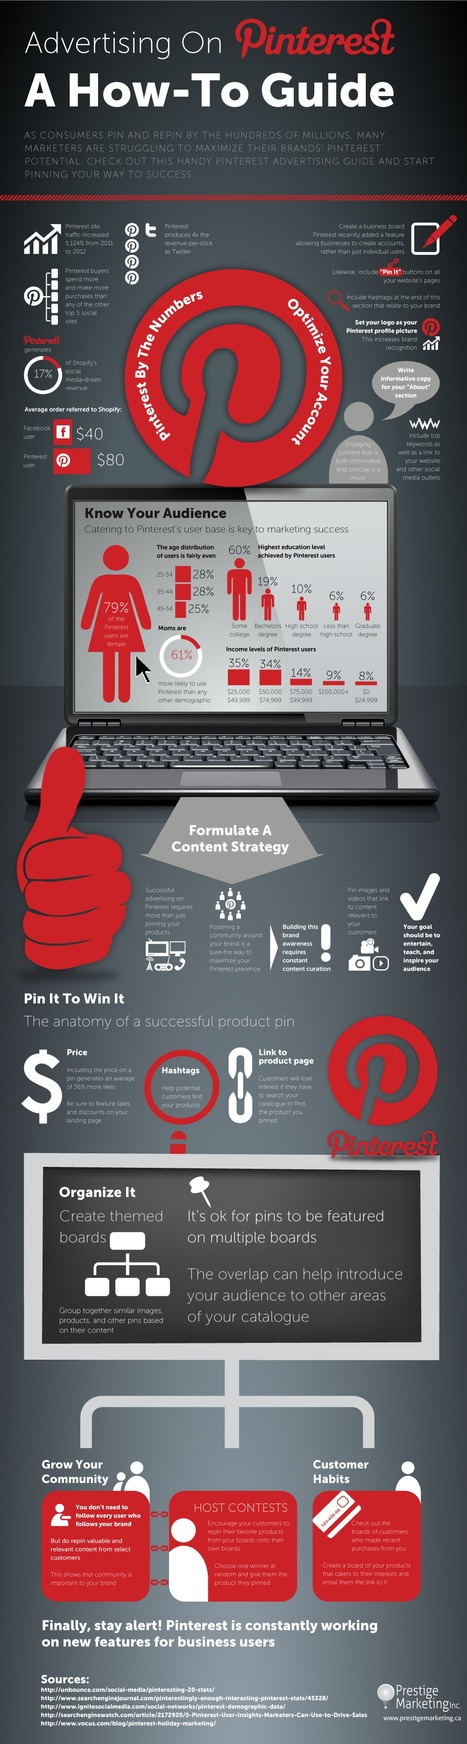 A Marketer's Guide To Pinterest - Infographic | Social Media (network, technology, blog, community, virtual reality, etc...) | Scoop.it